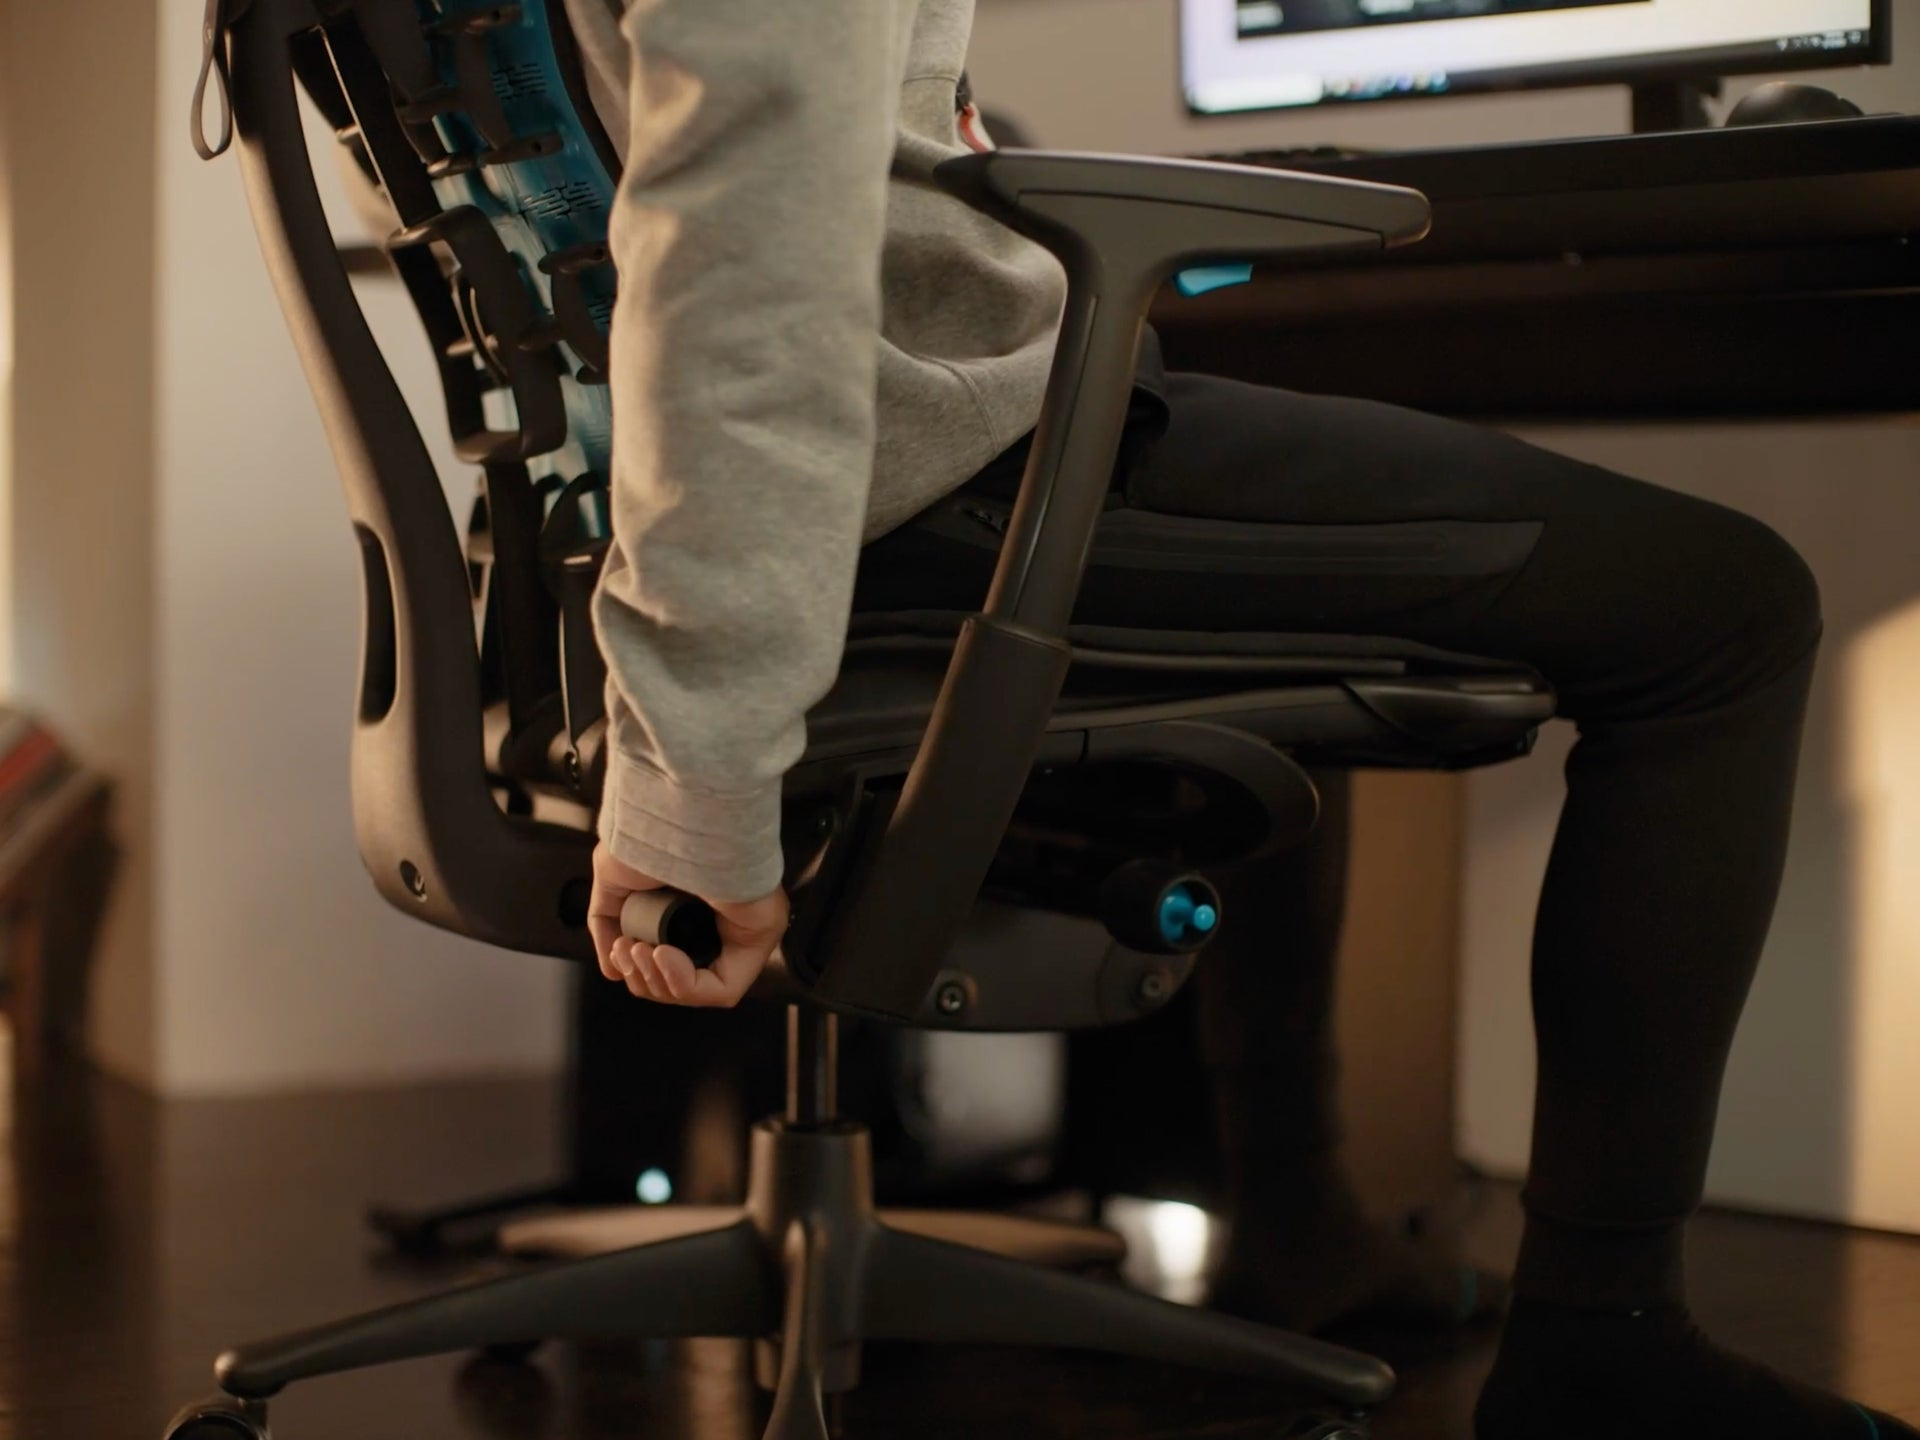 A close-up video of a person's hand adjusting the BackFit on a black Embody Gaming Chair.